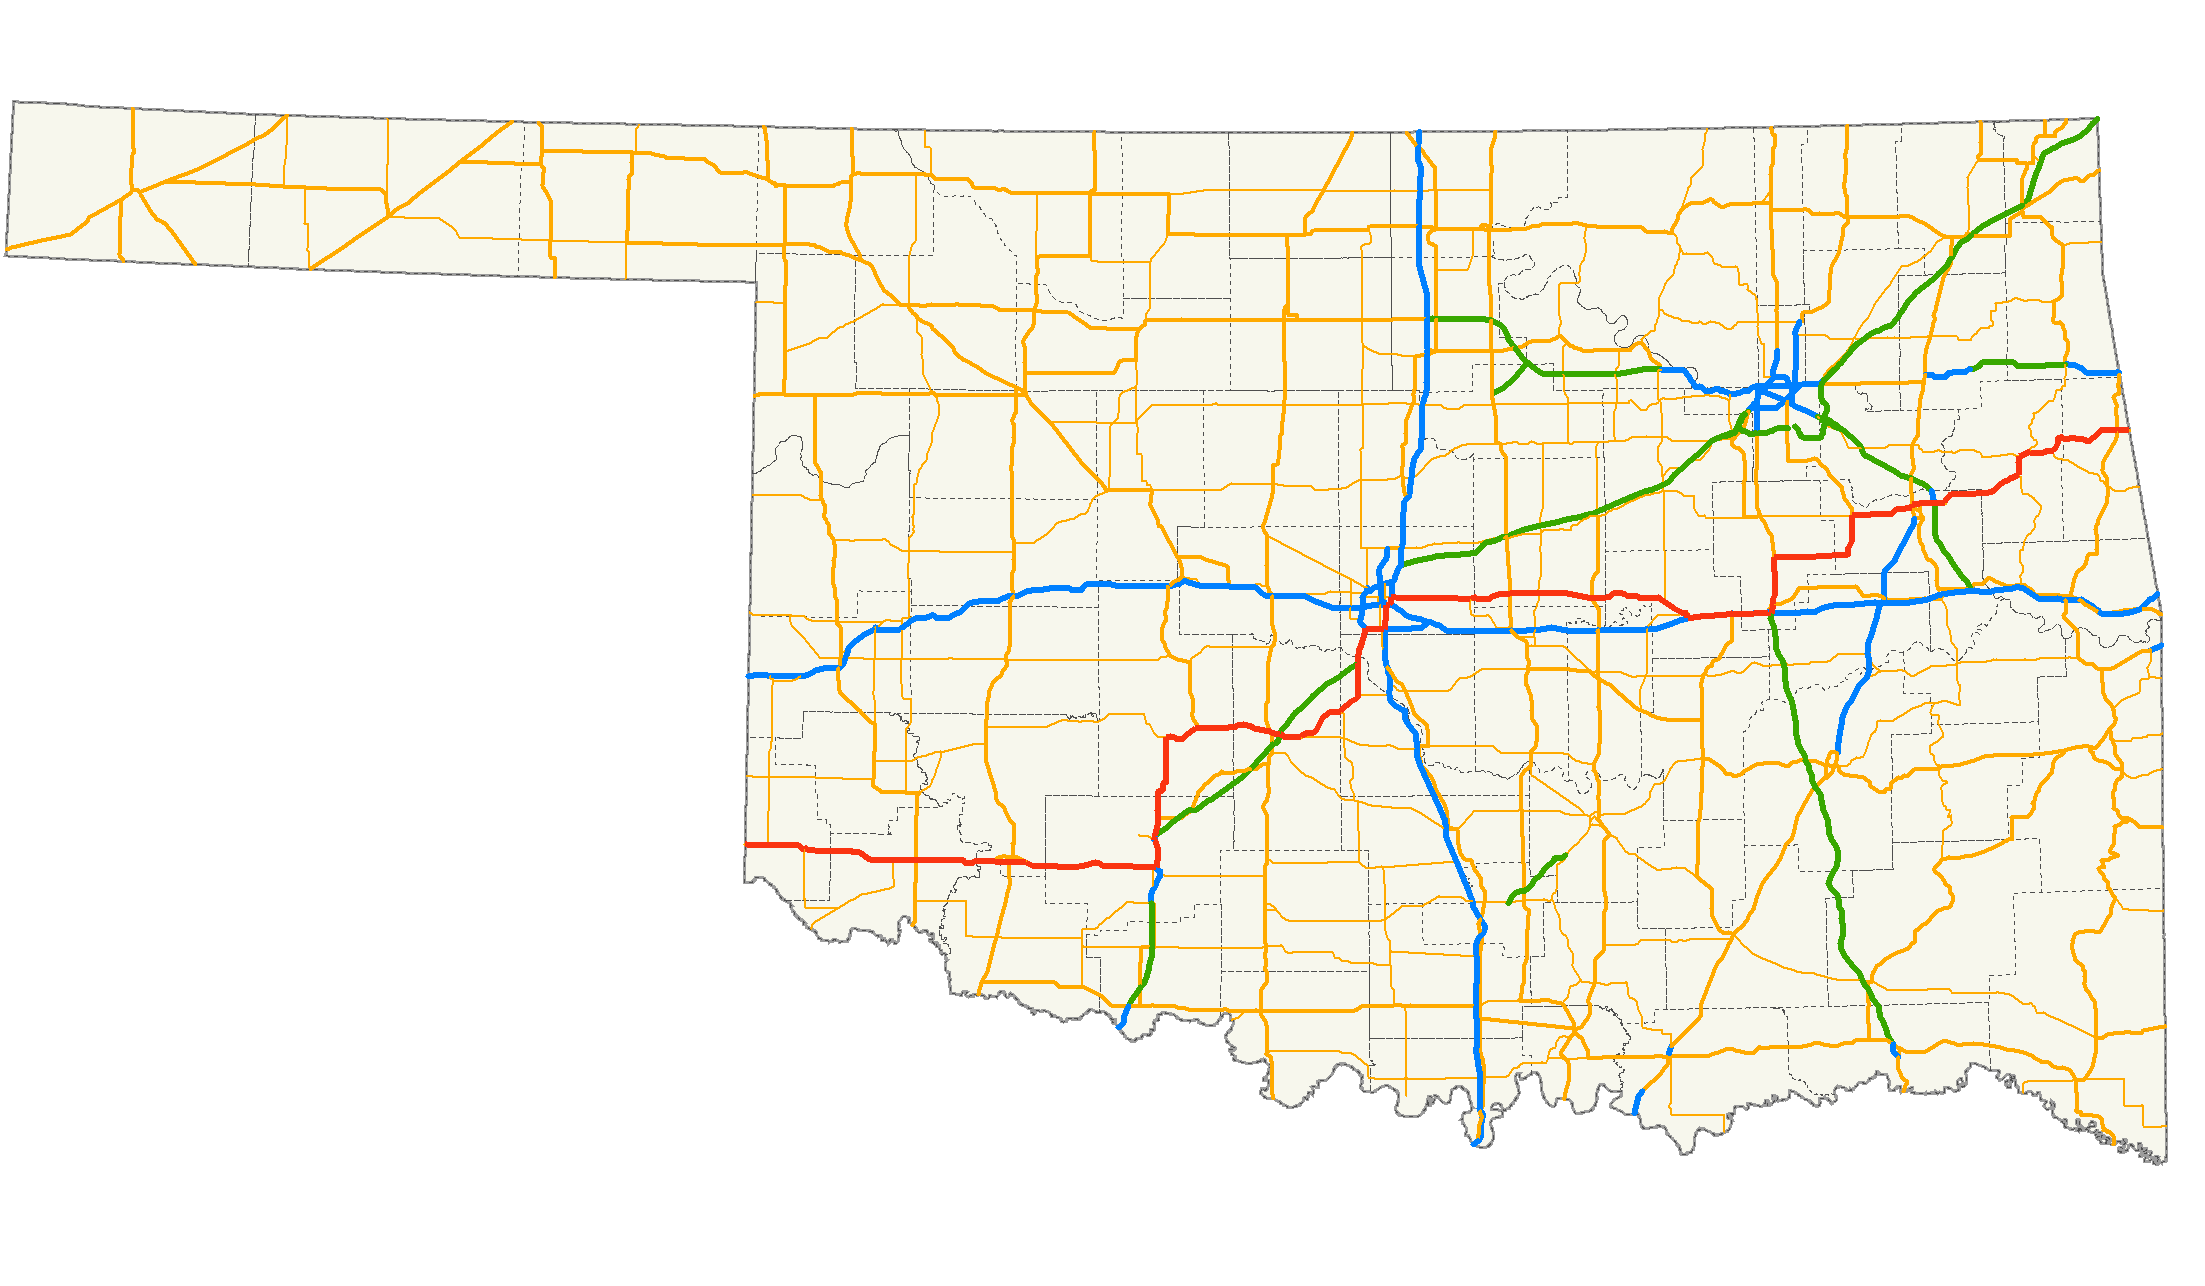 FileUS Oklahoma Mappng Wikimedia Commons - Oklahoma in us map